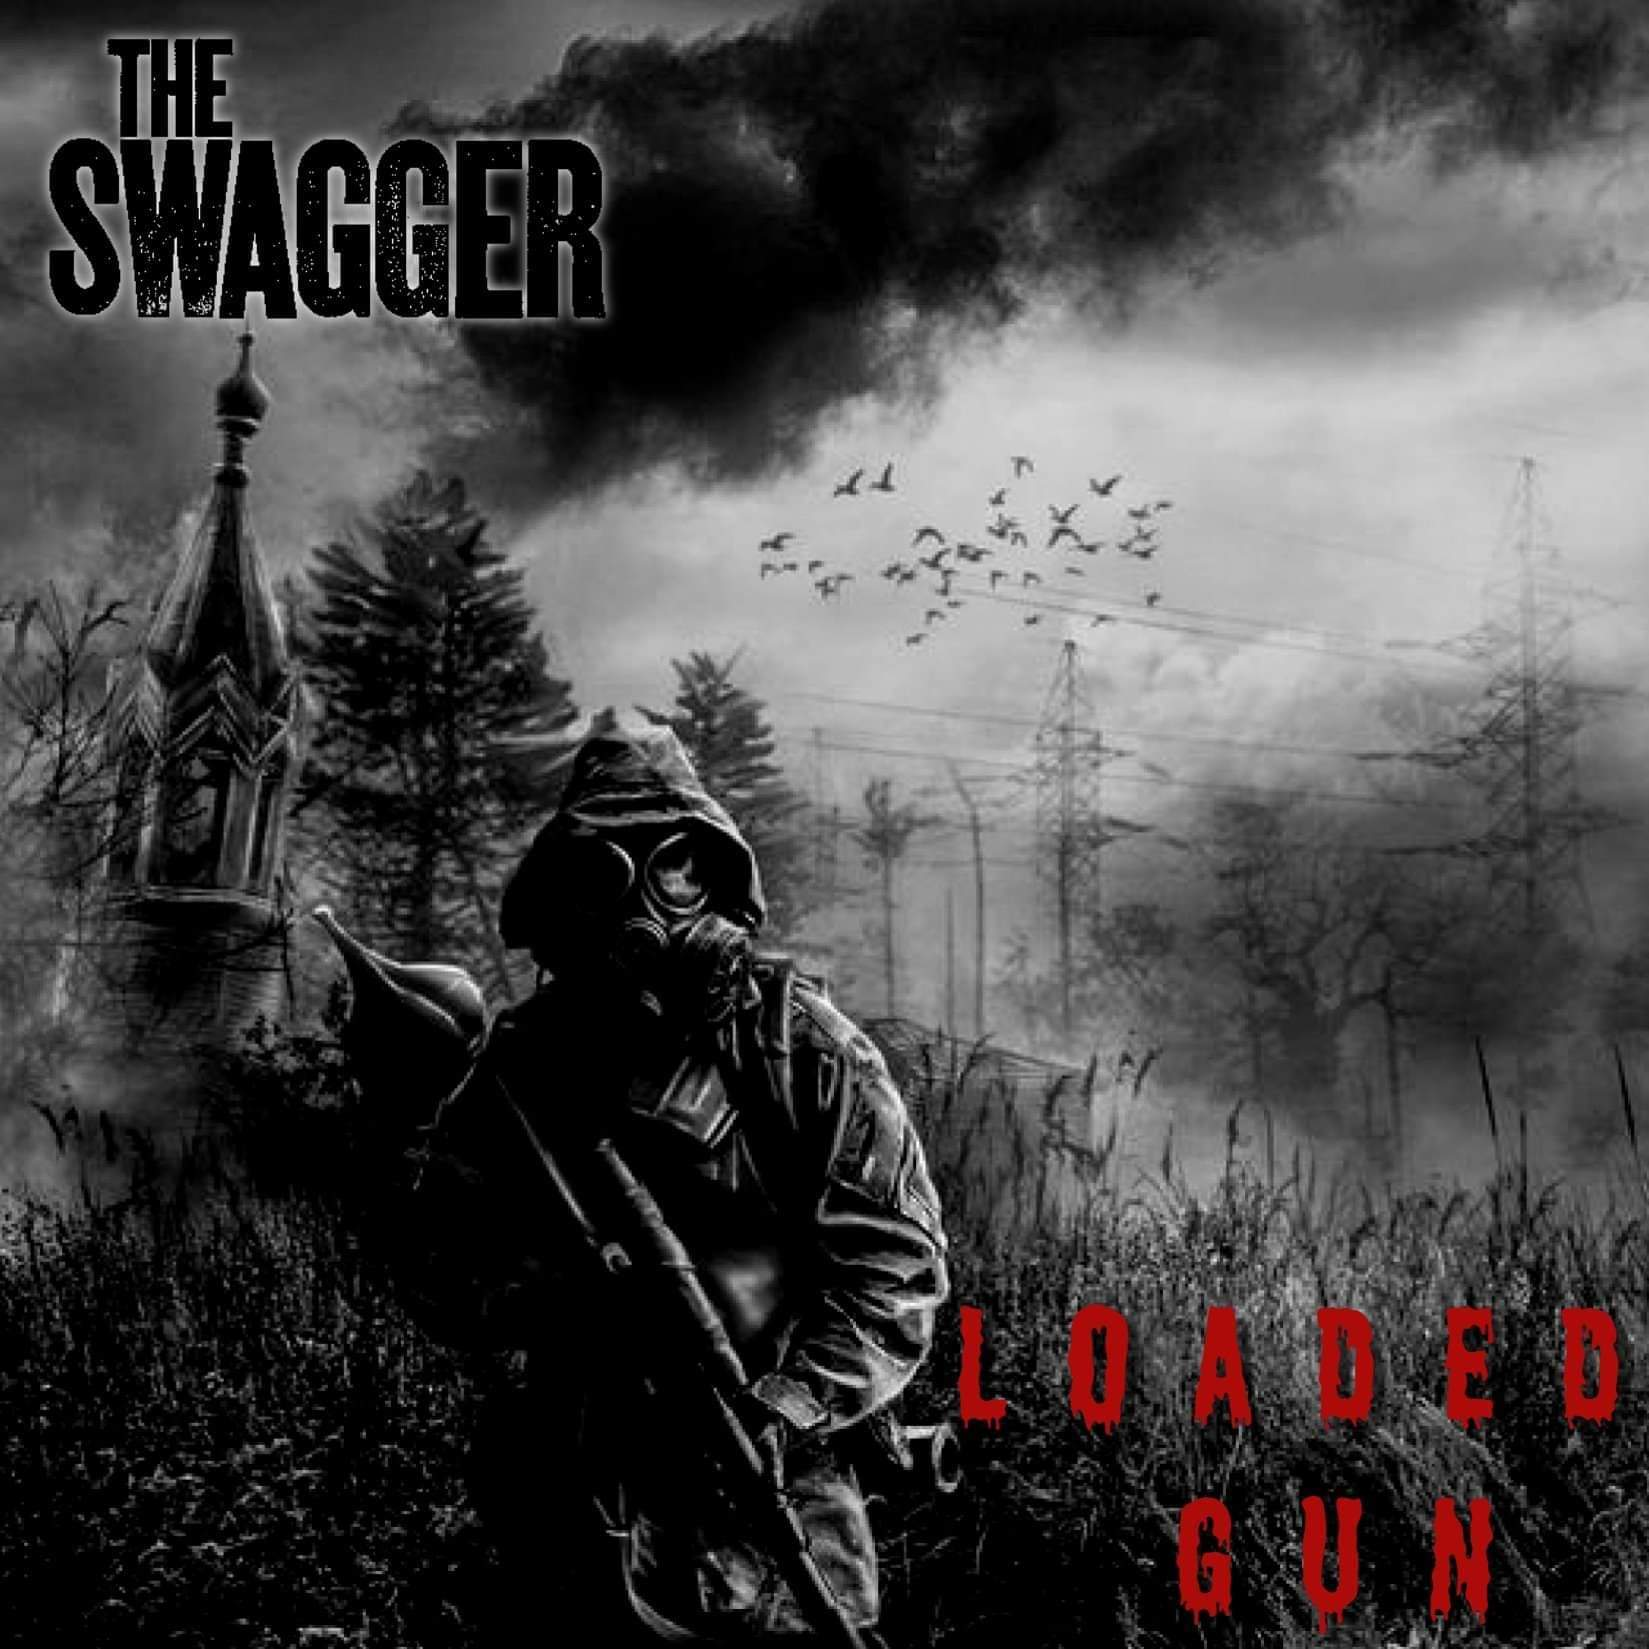 The Swagger Loaded Gun (single) review